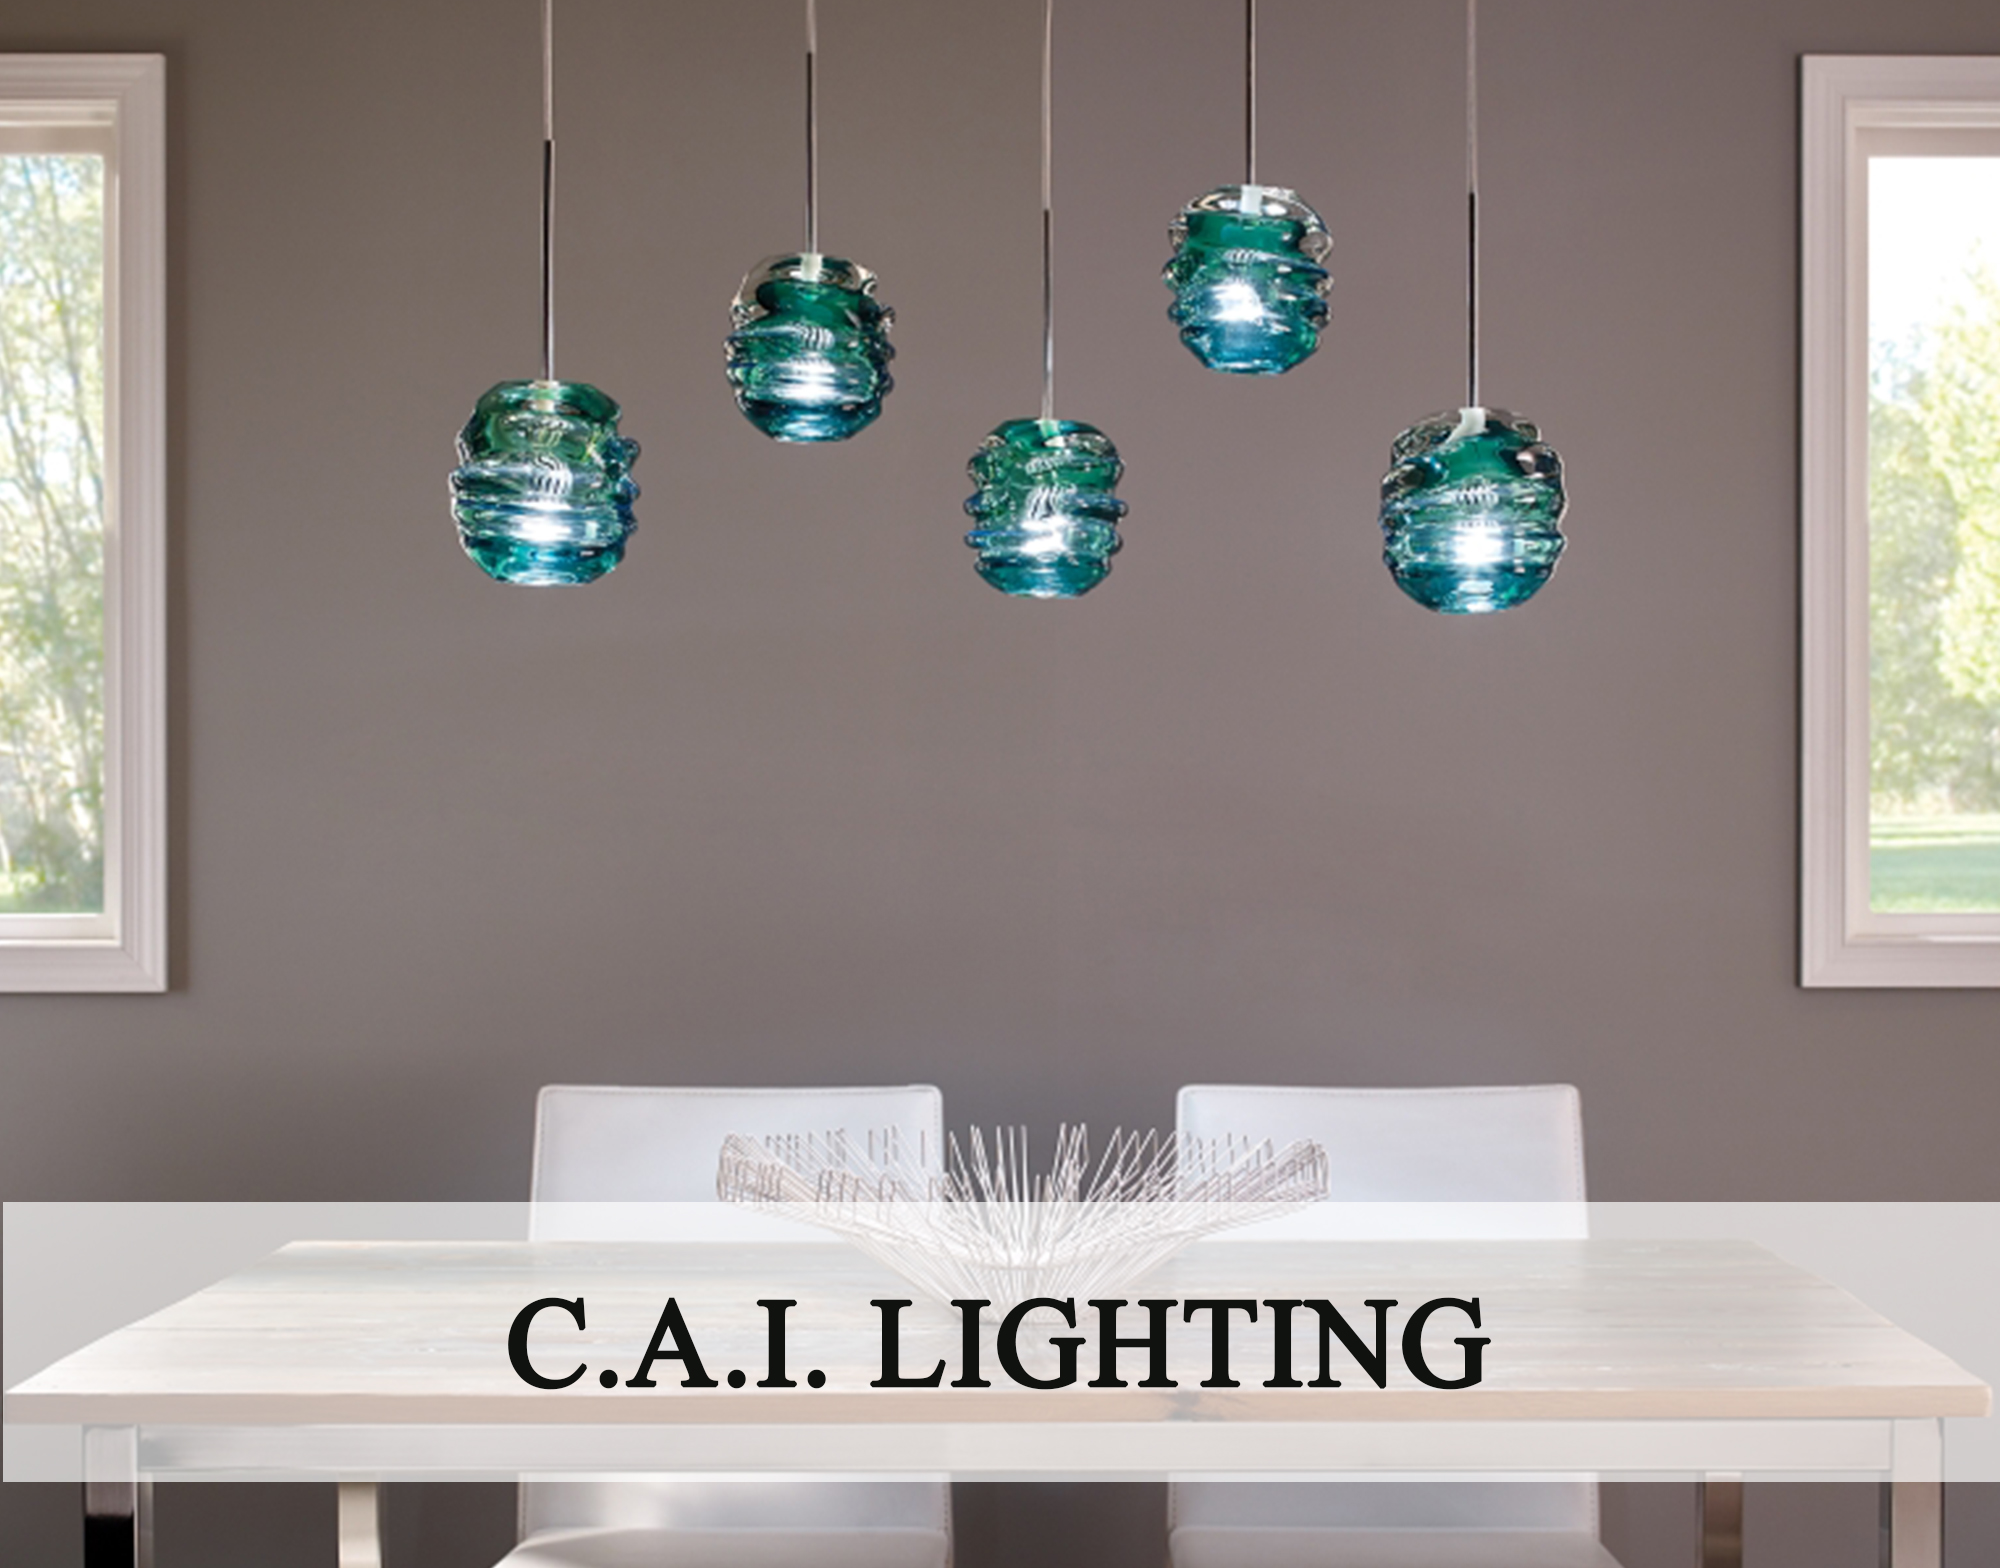 C.A.I. Lighting